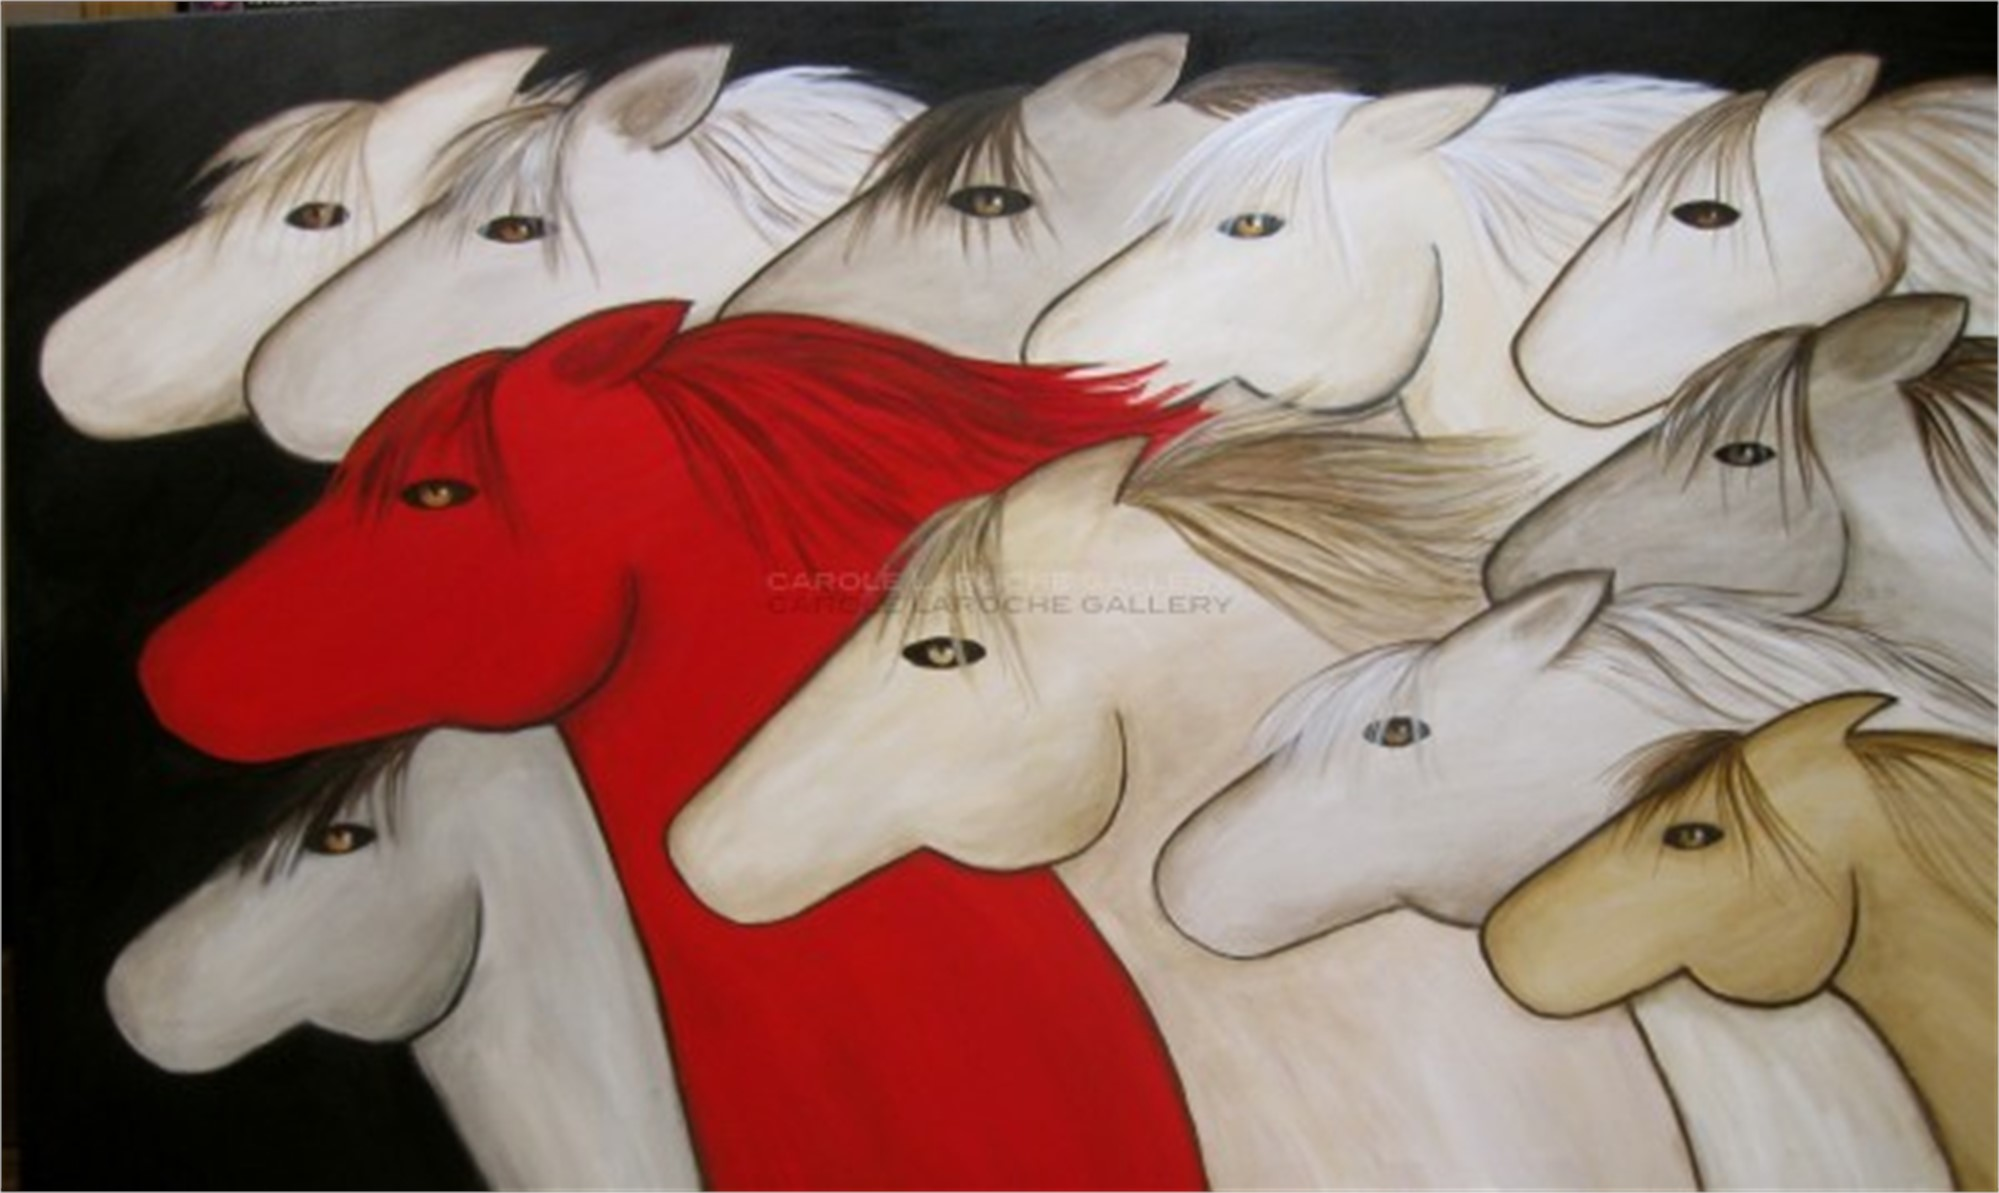 "RED PONY - limited edition giclee on canvas: (large) 40""x65"" $3500 or (medium) 24""x40"" $2200 by Carole LaRoche"